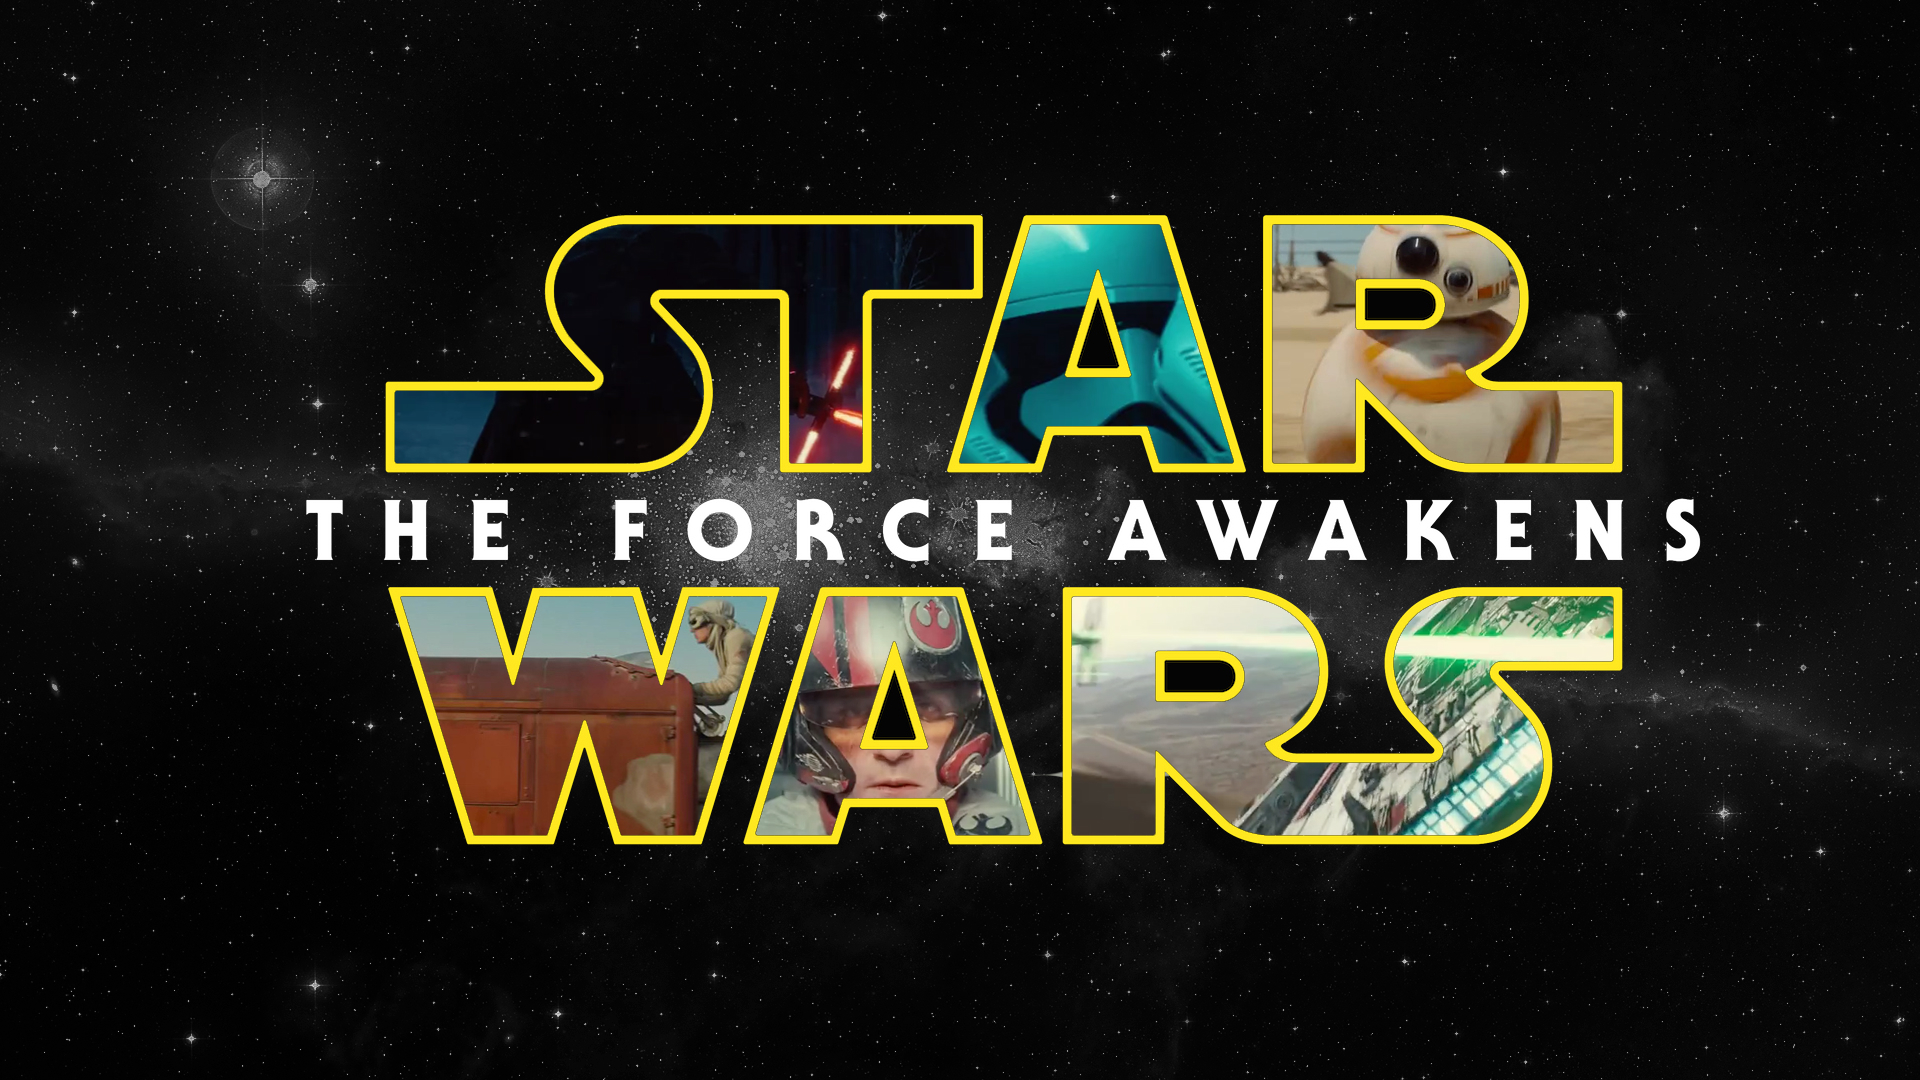 star wars episode vii the force awakens full hd